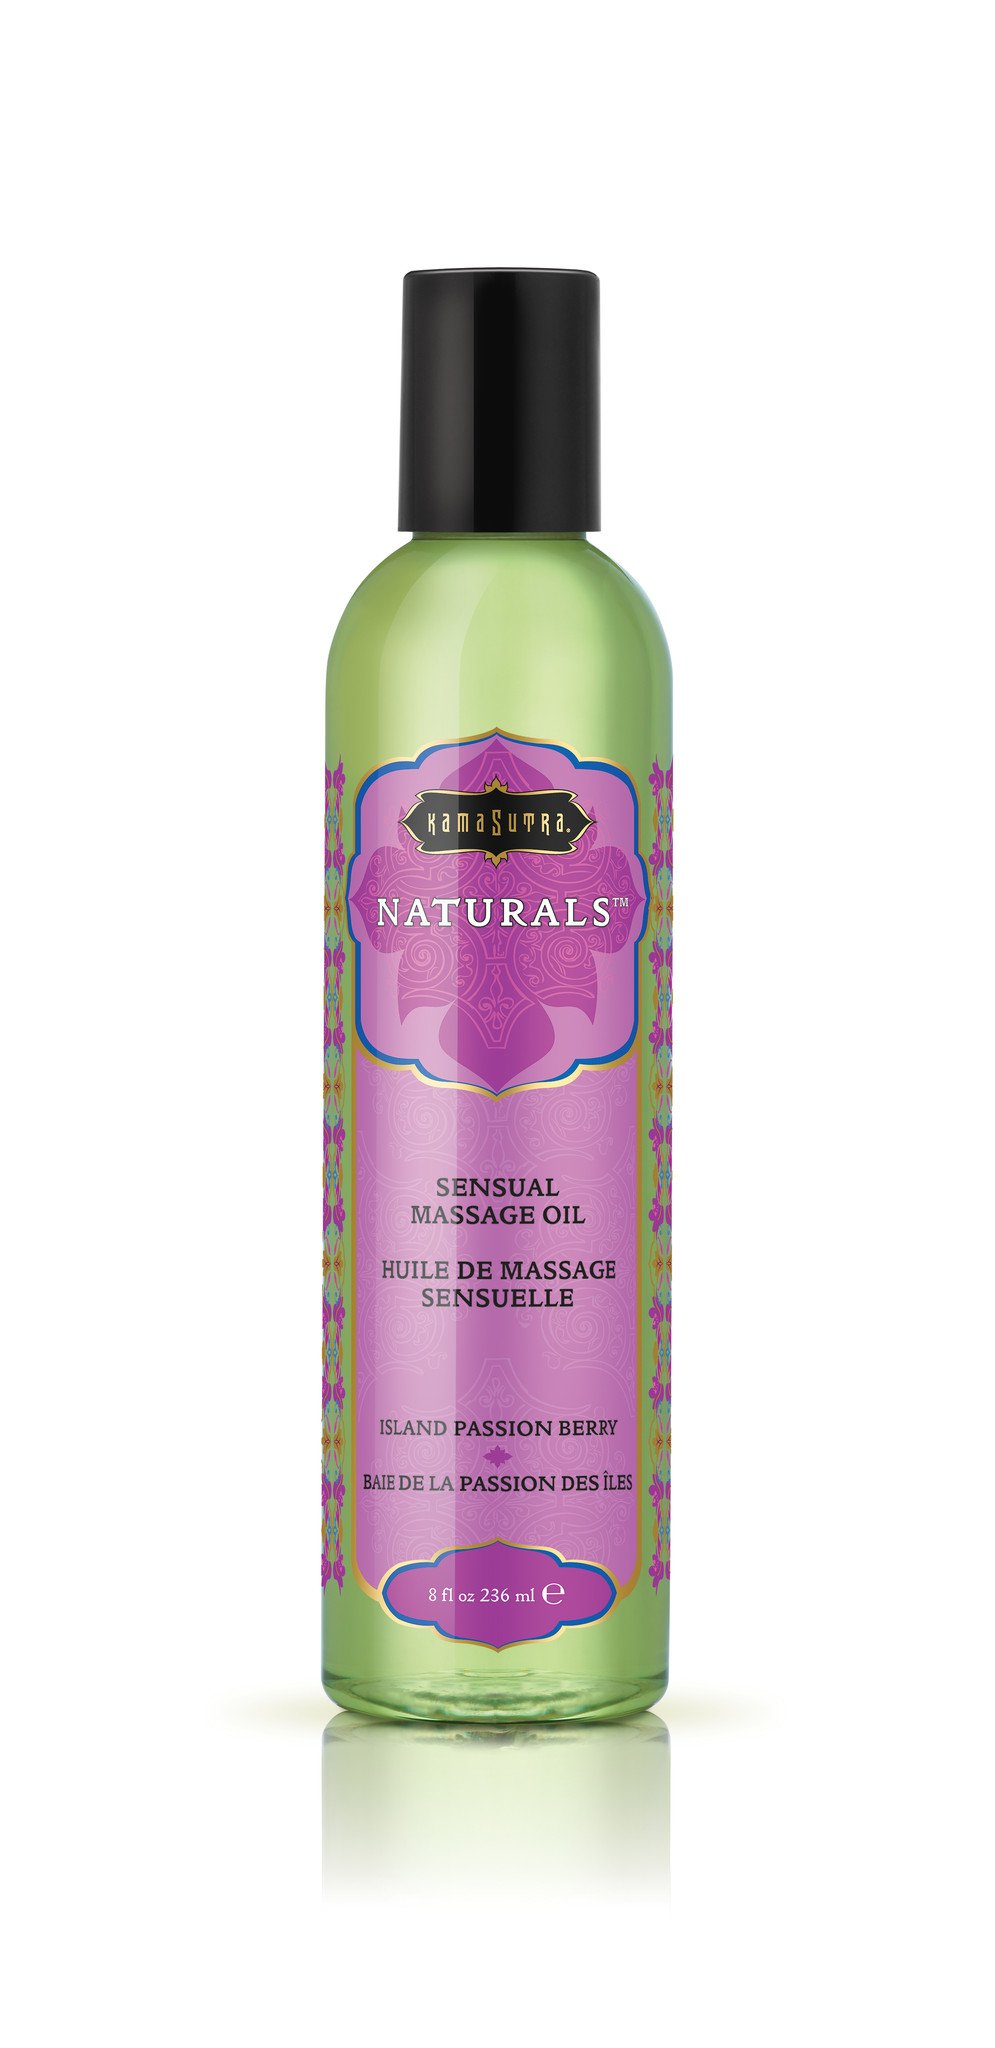 Kama Sutra Naturals Massage Oil Island Passion Berry, 8 Fluid Ounce by Kama Sutra